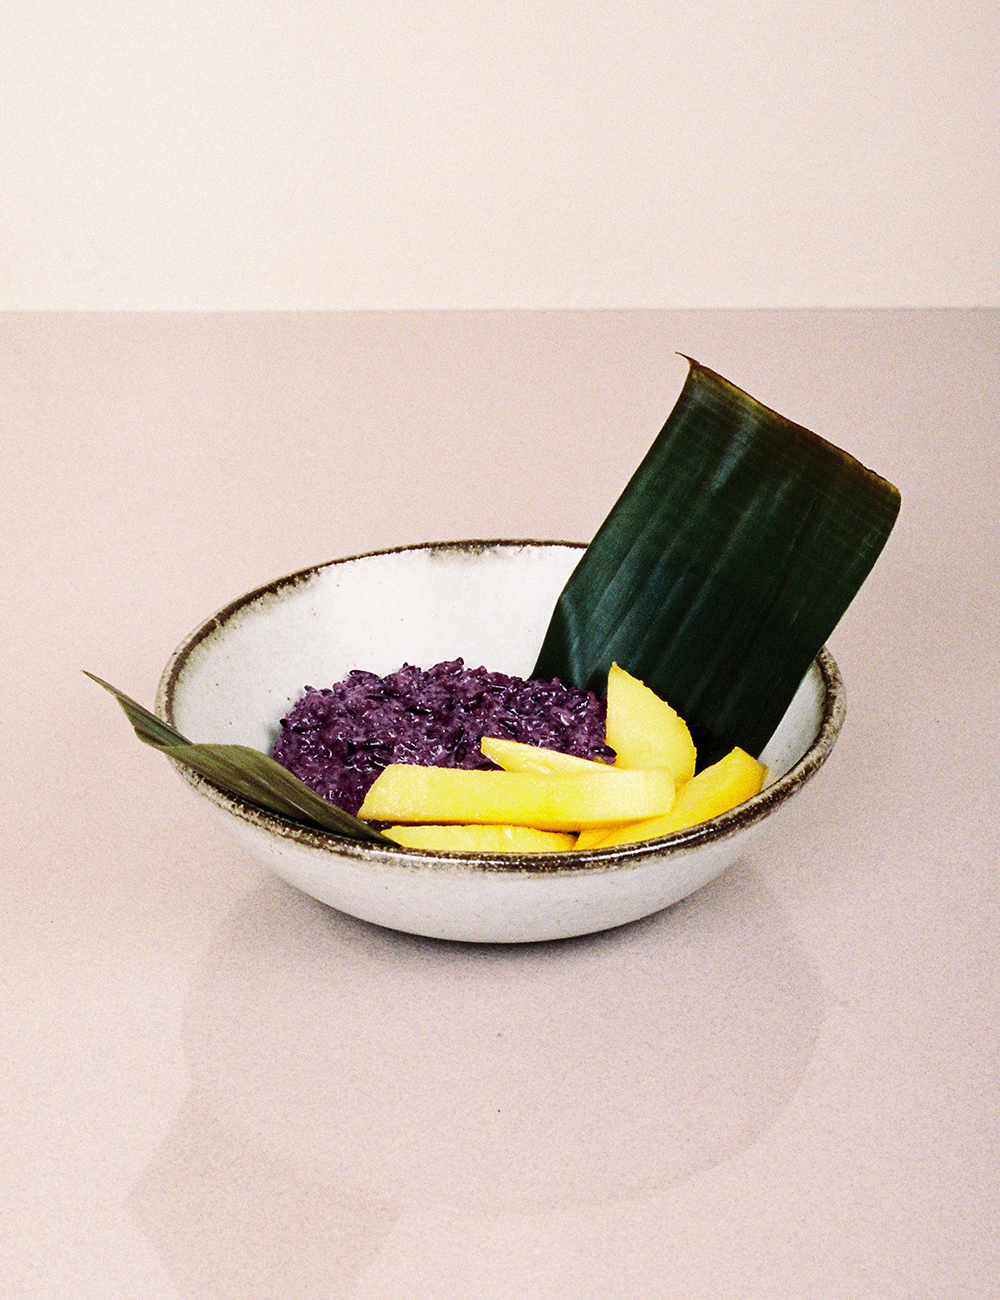 Lindsay Recipe | Thai Sticky Rice with Mango by Nartchanok Jansri McHaffie | Photo by Beth Wilkinson